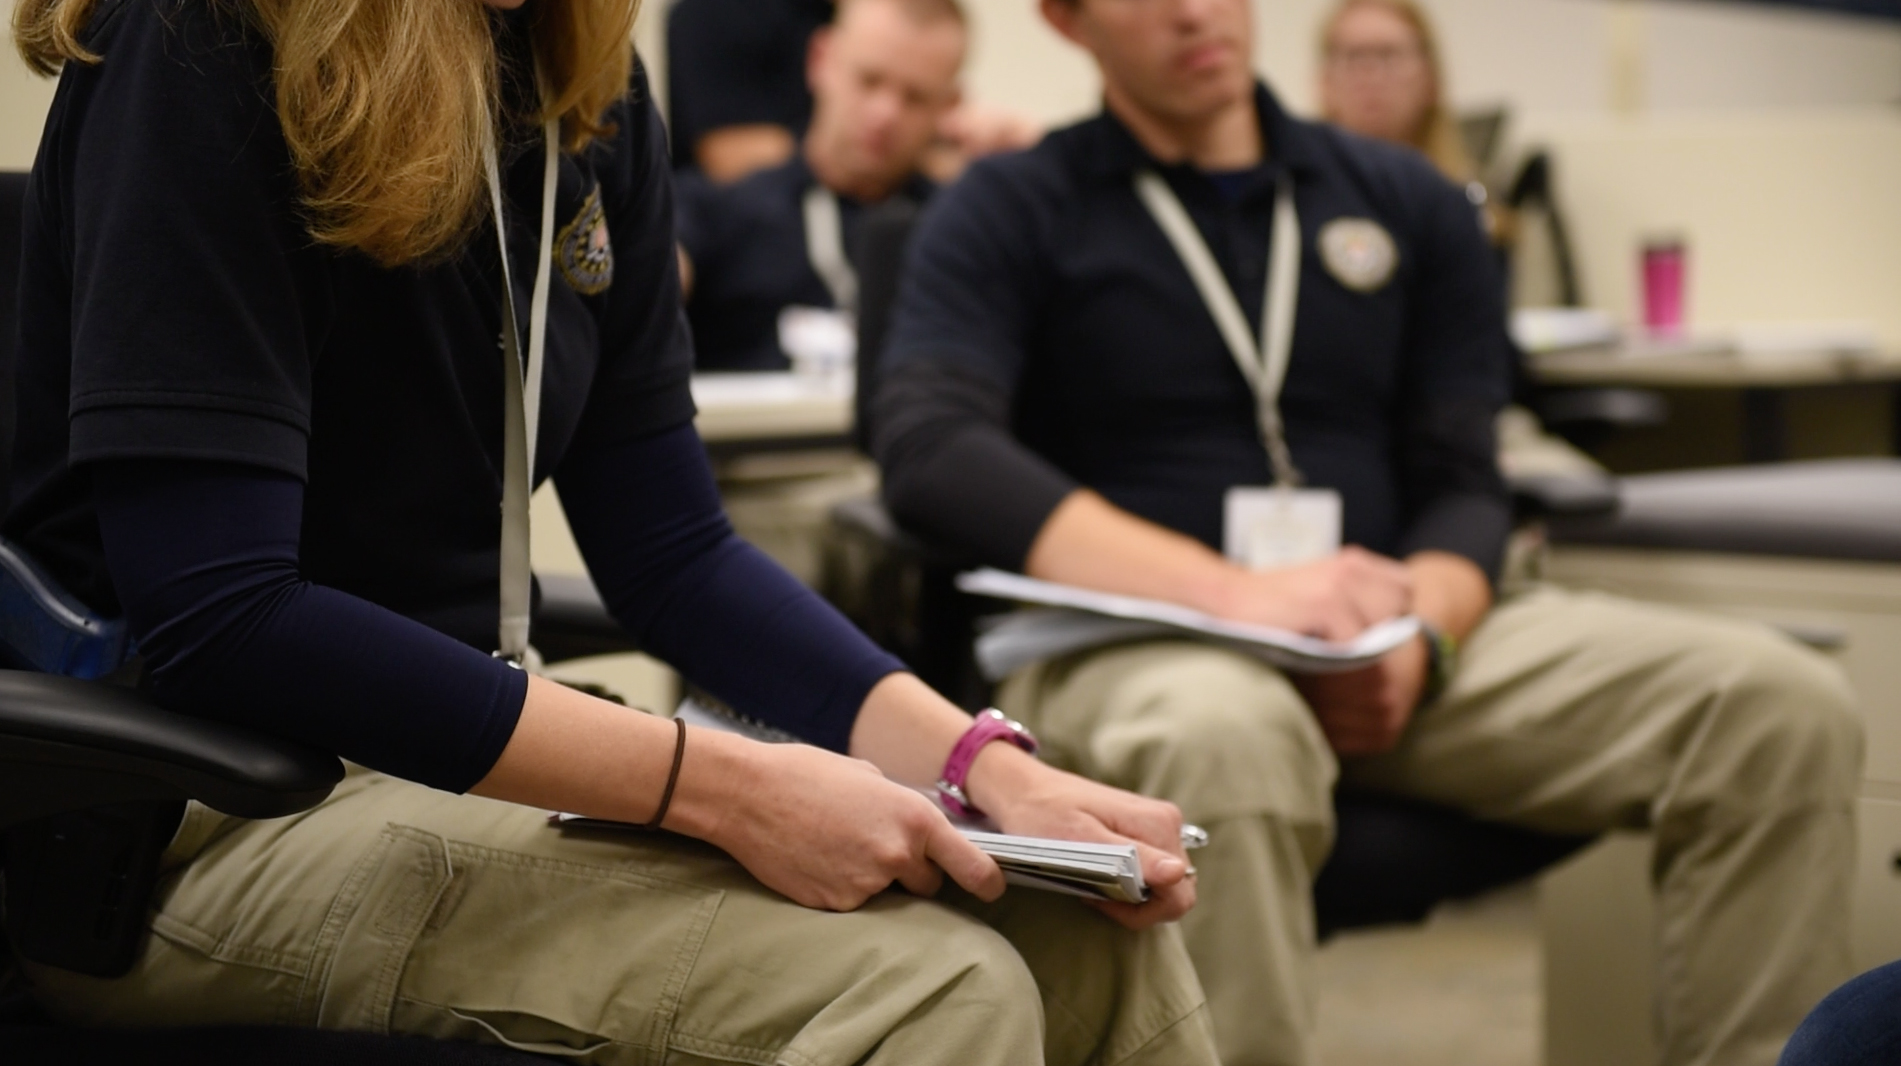 New Agents and Intelligence Analysts Train Together Inside an FBI Academy Classroom